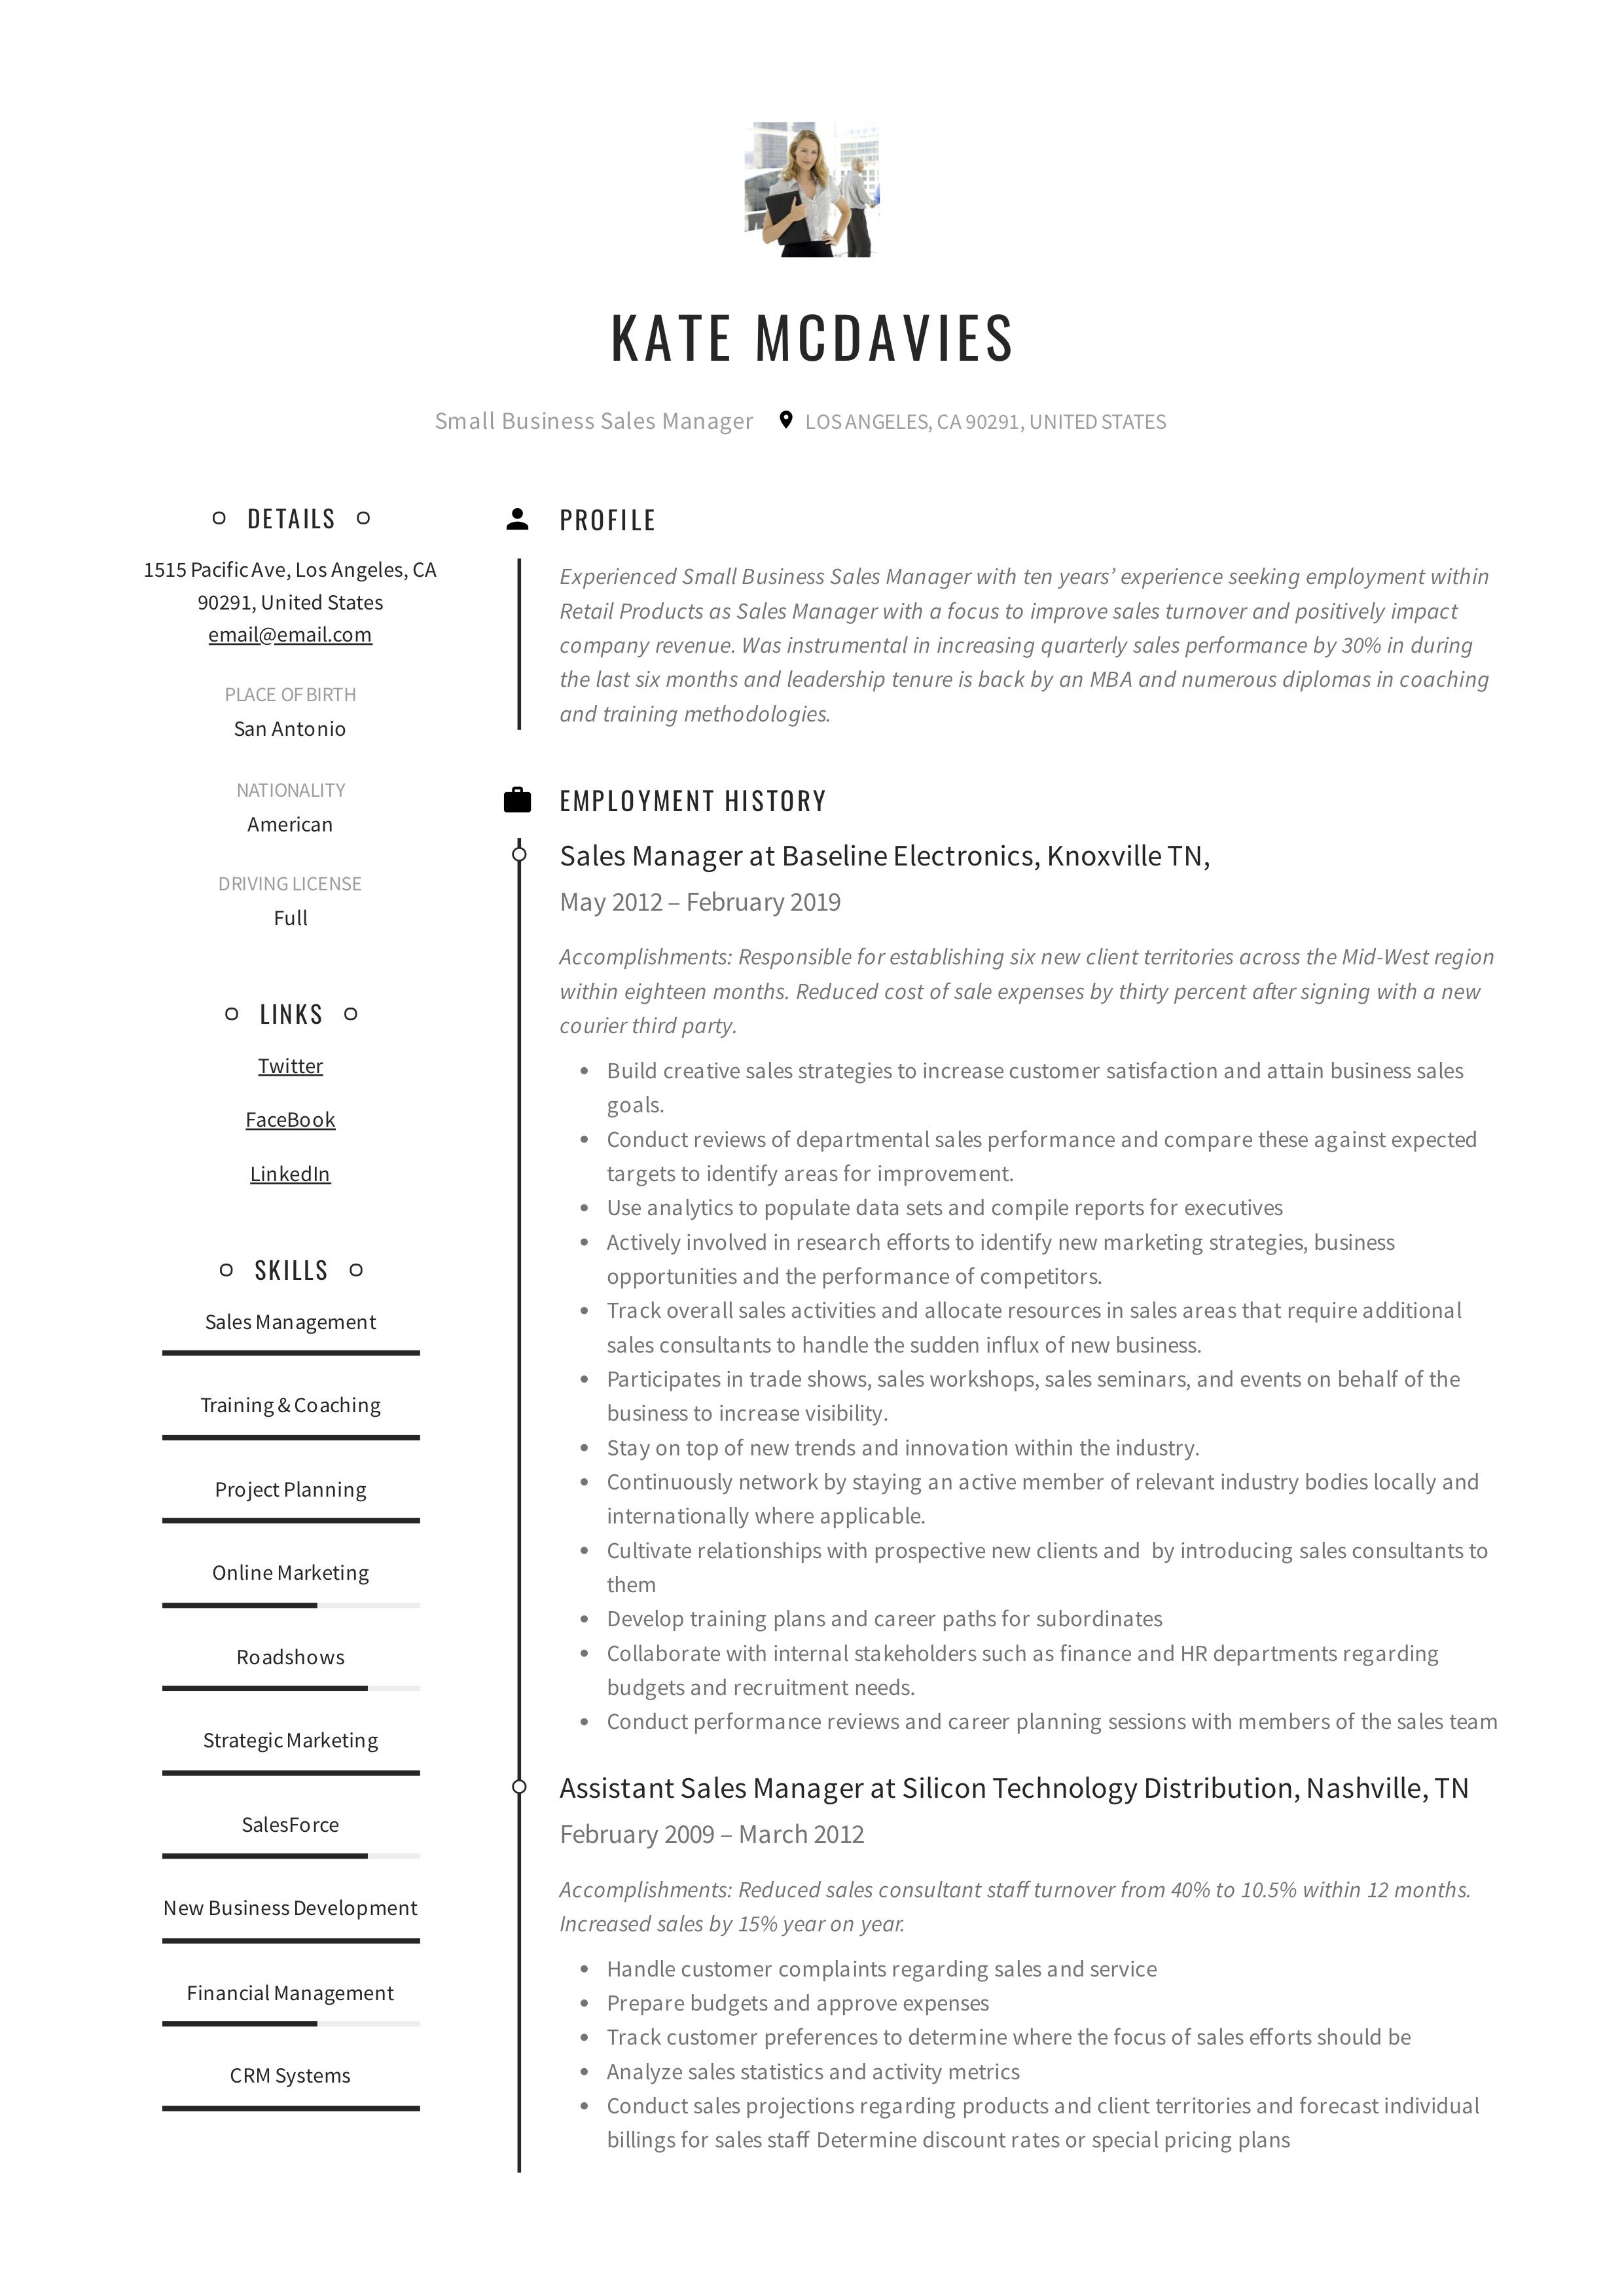 Small Business Sales Manager Resume Example In 2020 Manager Resume Creative Small Business Business Sales